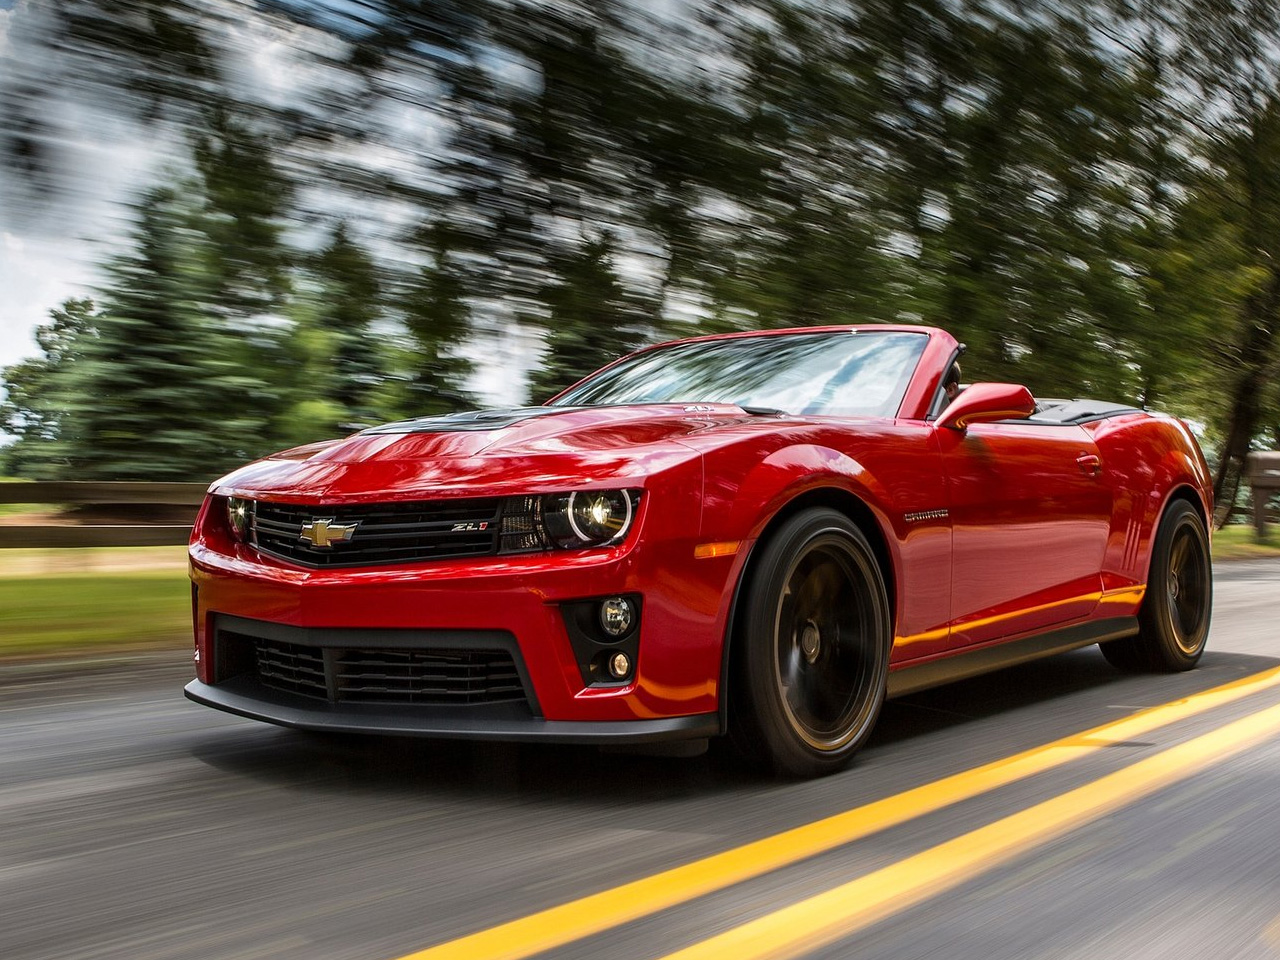 2013 Chevrolet Camaro ZL1 Convertible   Wallpapers 1280x960